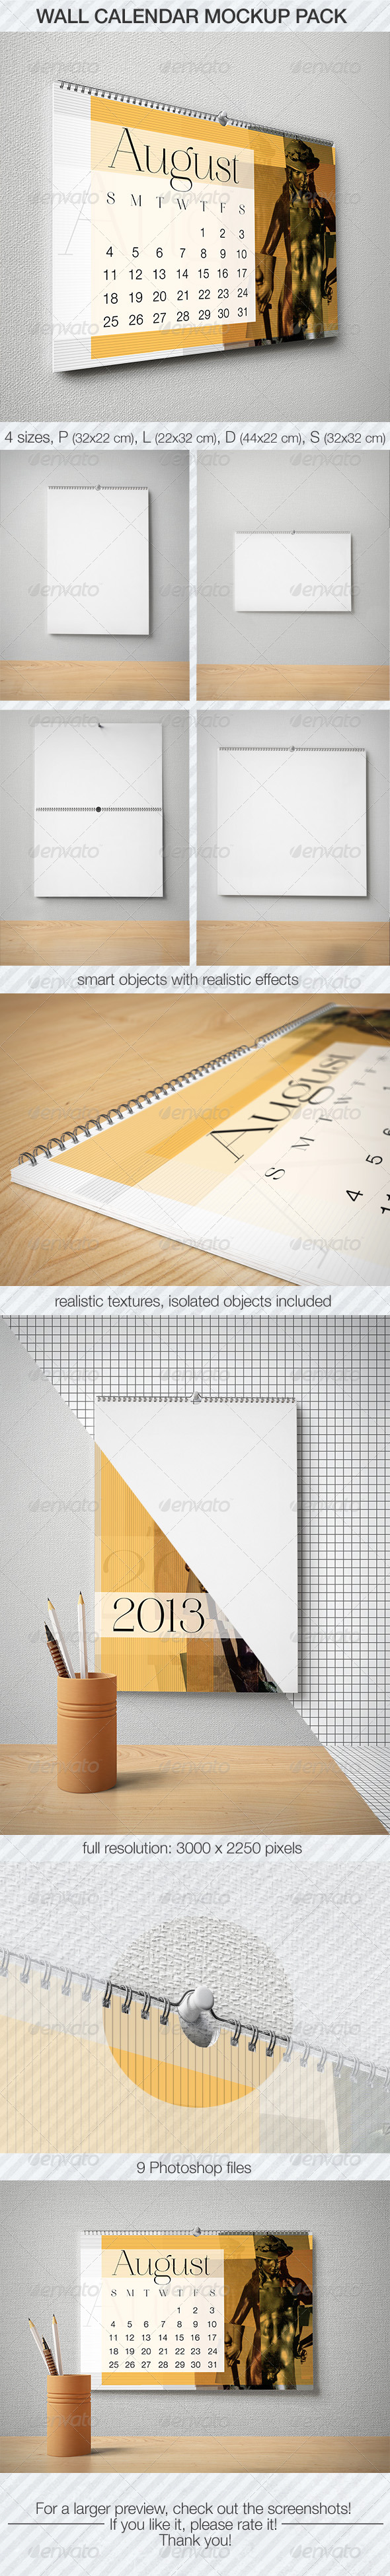 GraphicRiver Wall Calendar Mockup Pack 5383966